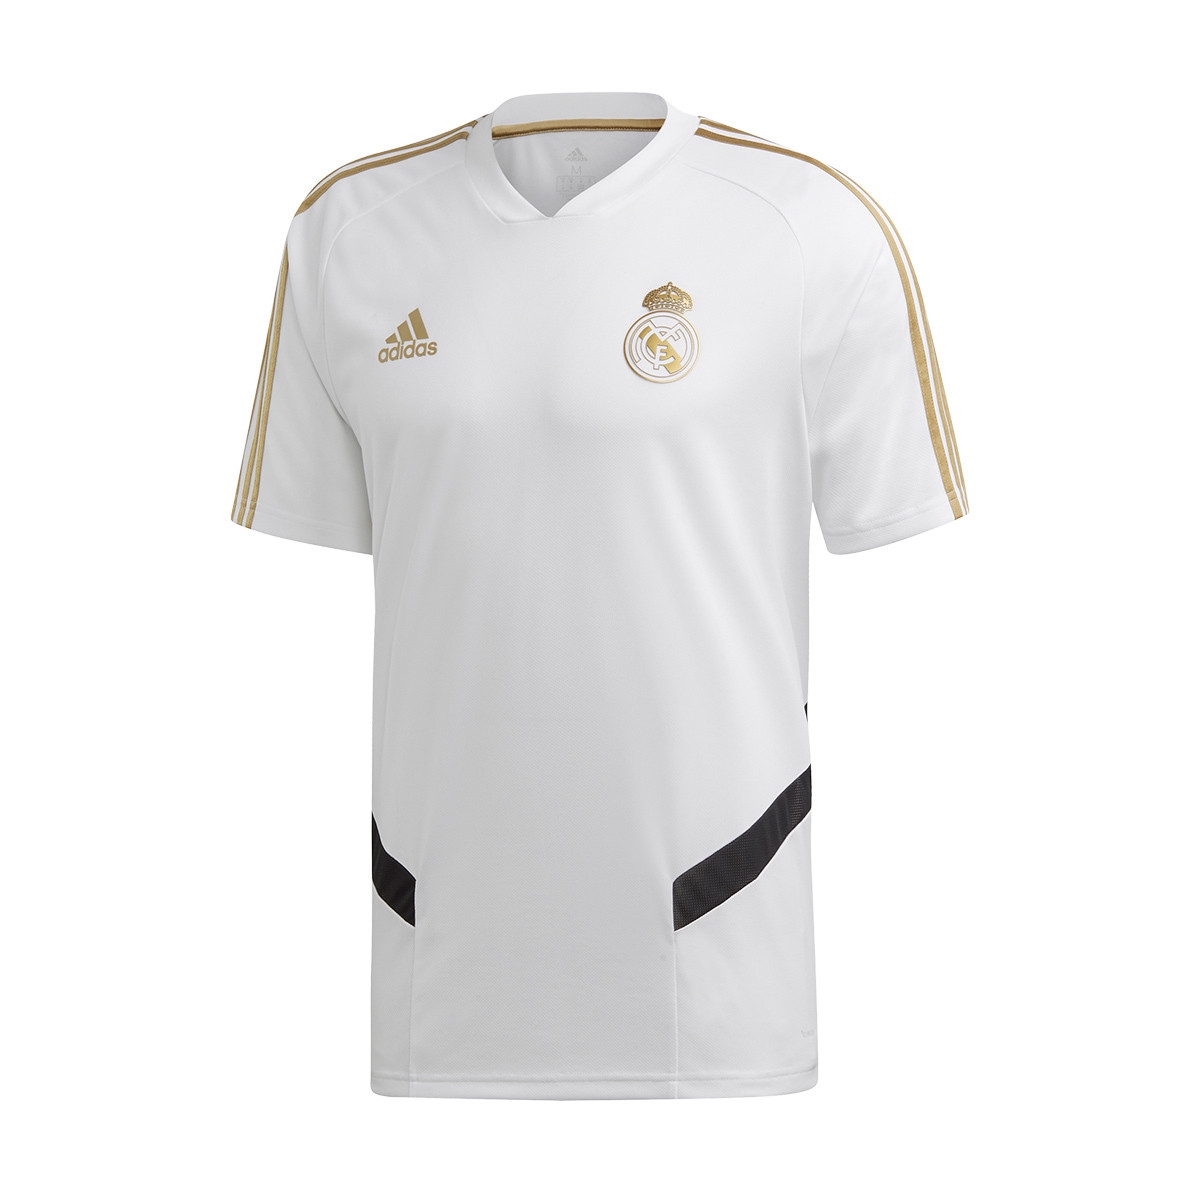 White 2019 Real Dark Camiseta Madrid 2020 Football Gold Training n8NwOm0yv